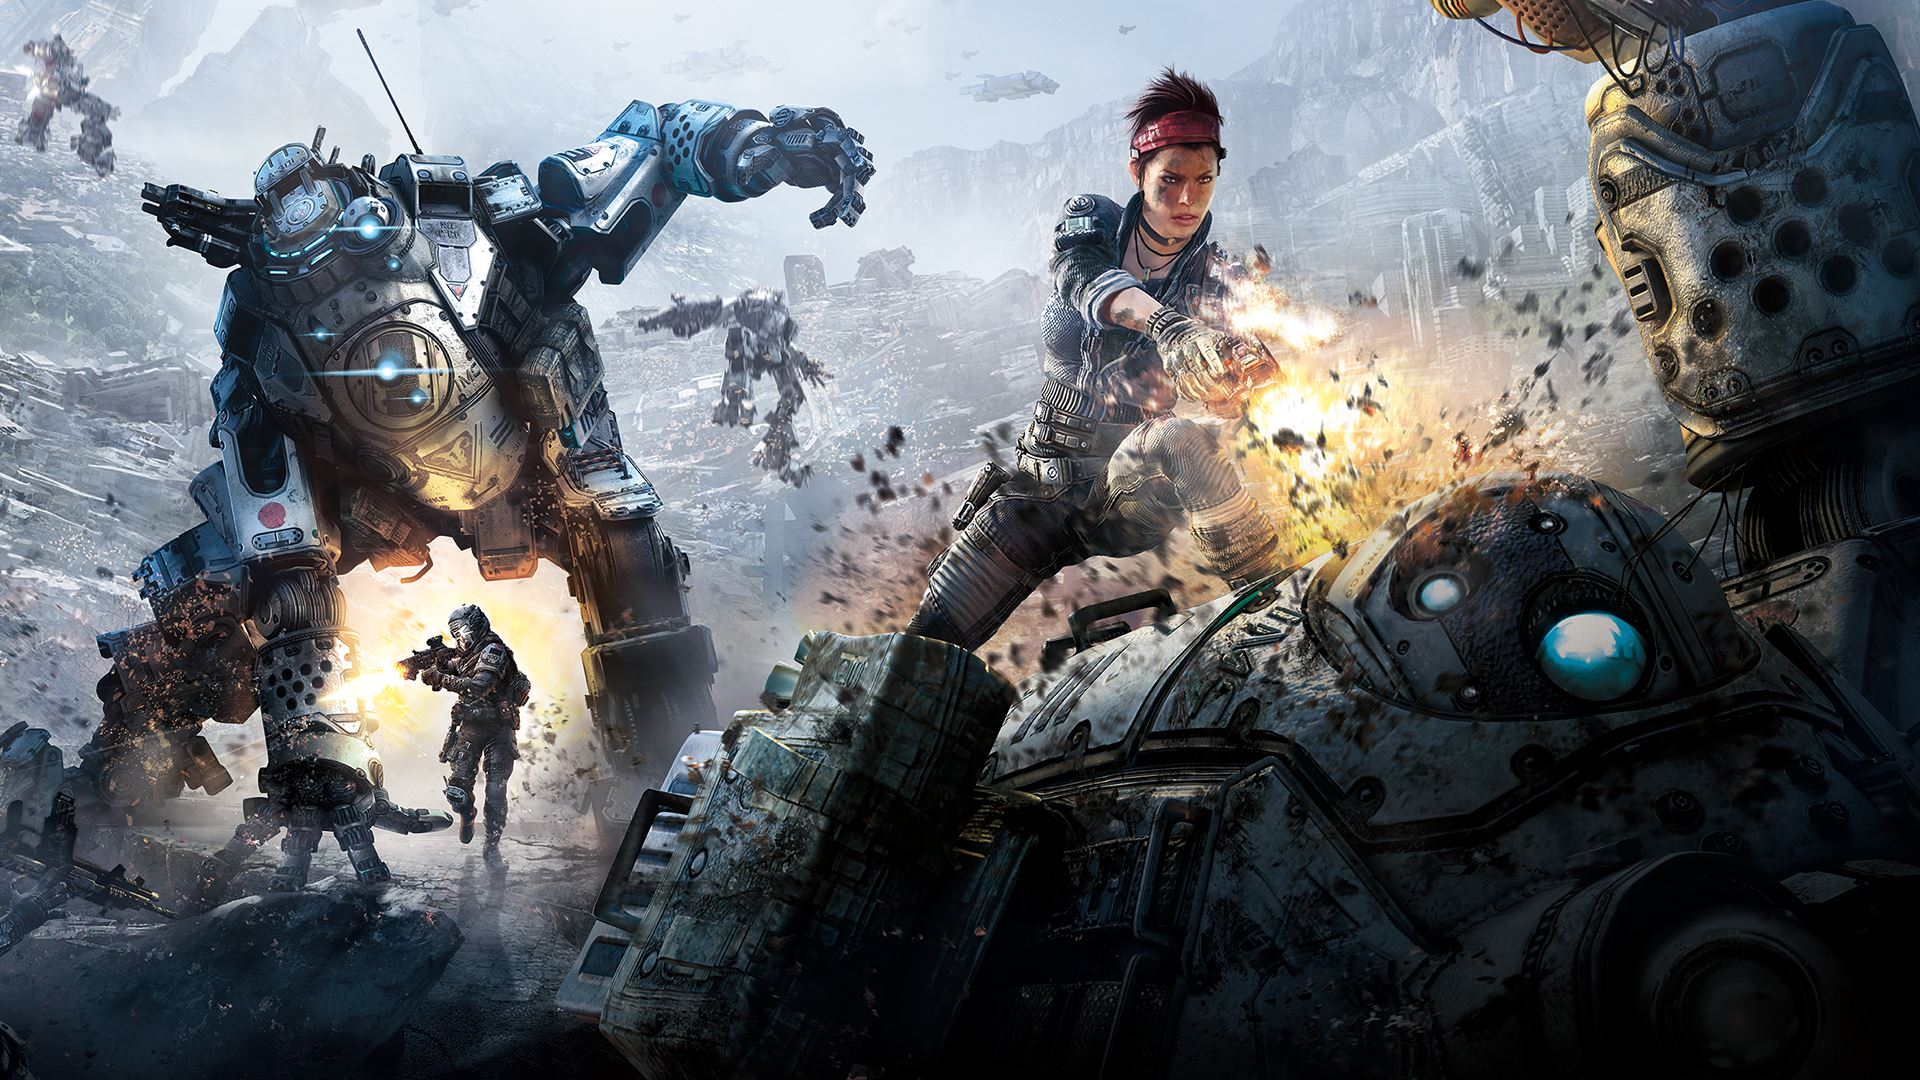 Titanfall Creators Respawn Teaming Up with Oculus for a New Game